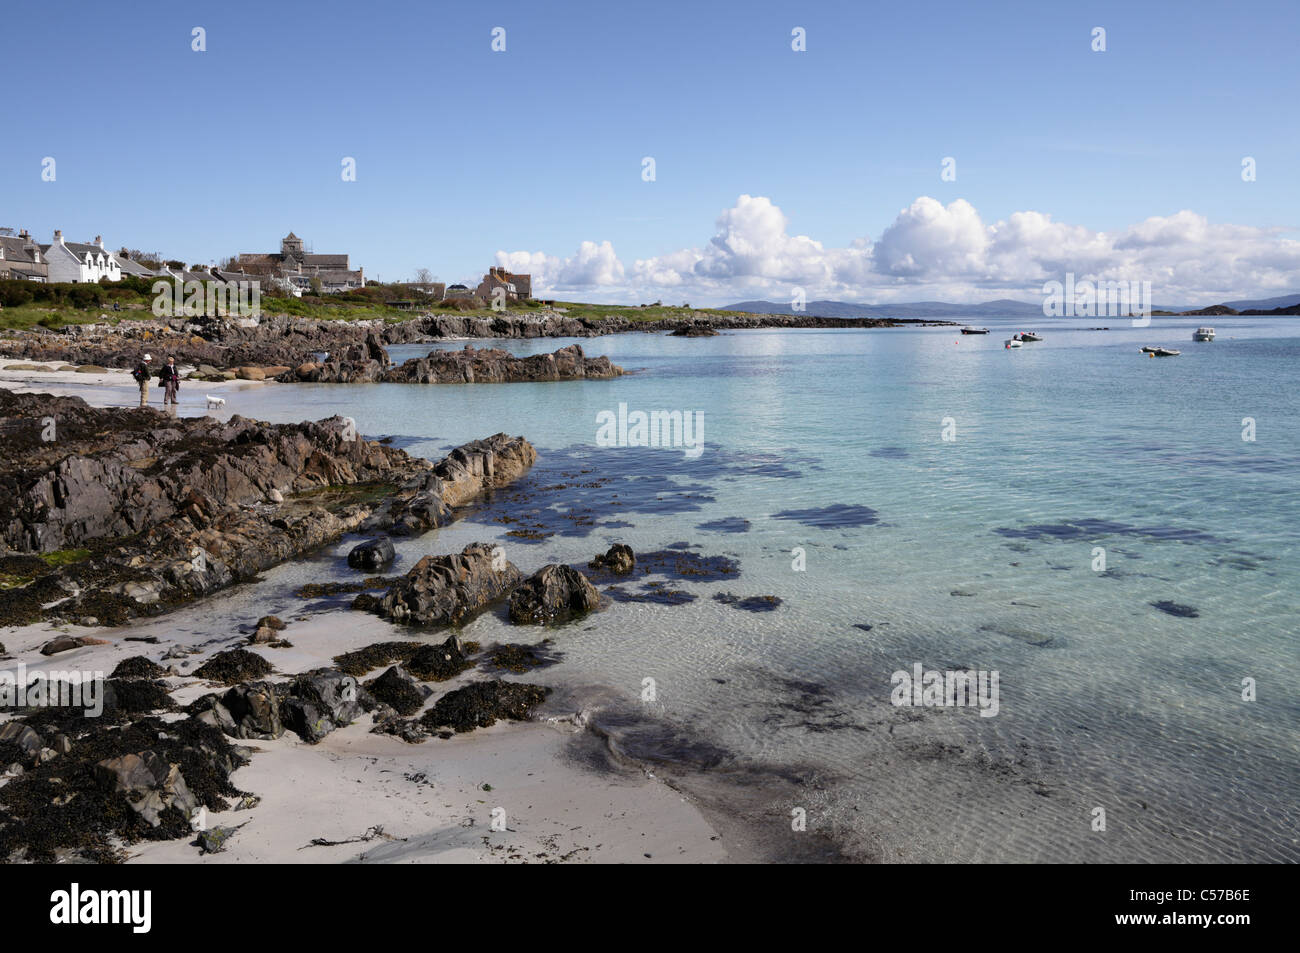 The island of Iona with the abbey - Stock Image